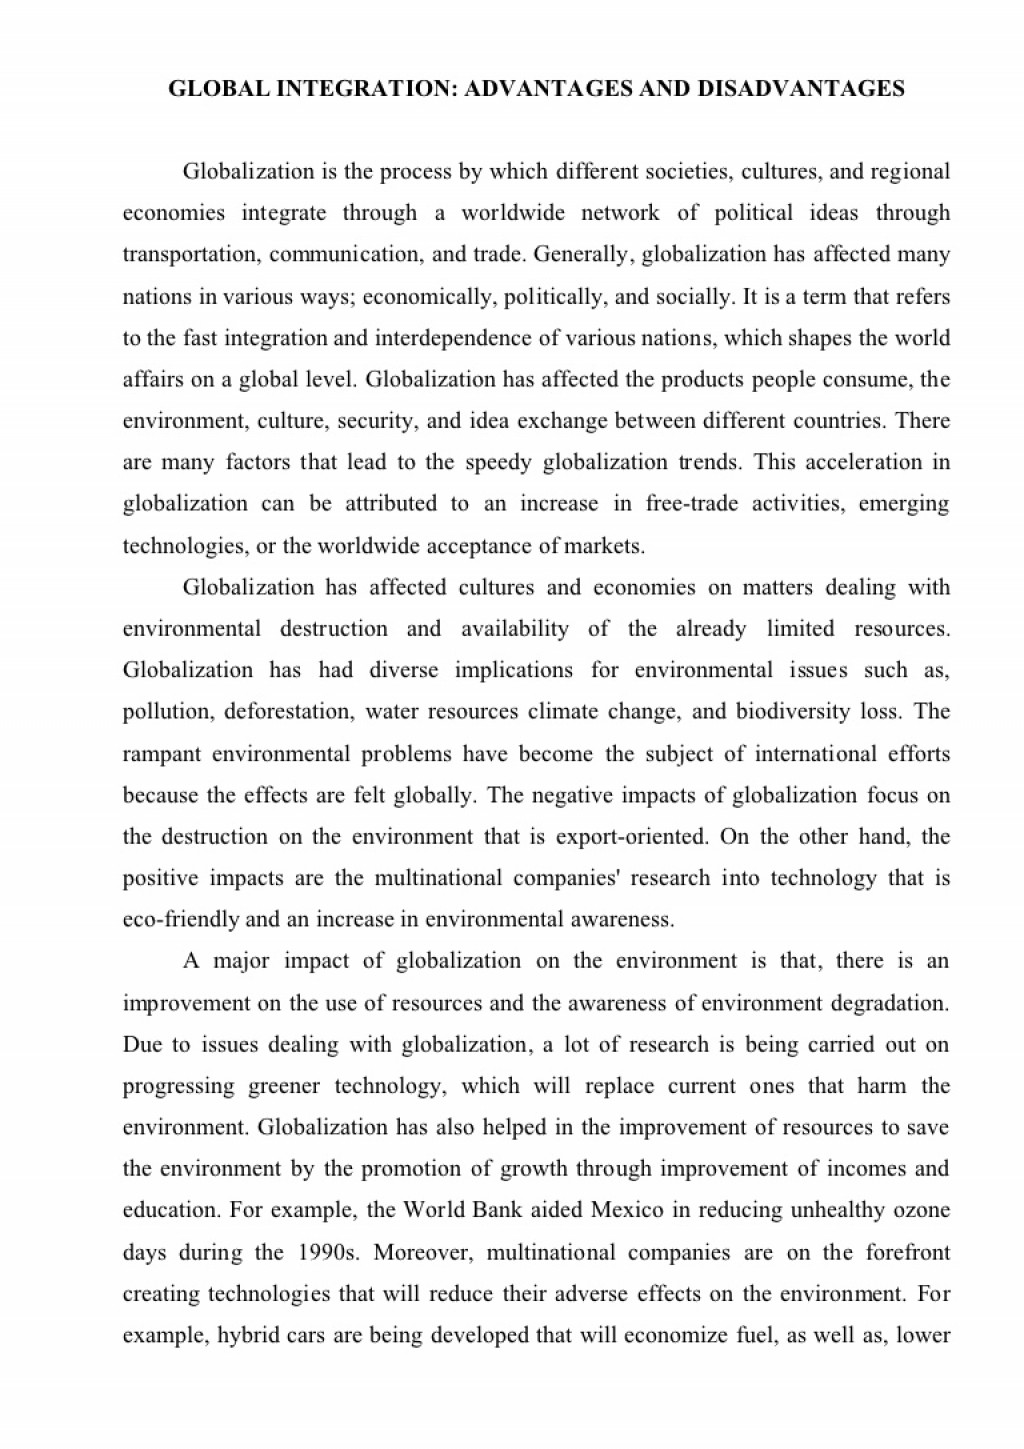 021 Essayglobalization Phpapp02 Thumbnail Essay Example Advantage And Disadvantage Of Shocking Science Advantages Disadvantages In Tamil Pdf Hindi Urdu Large